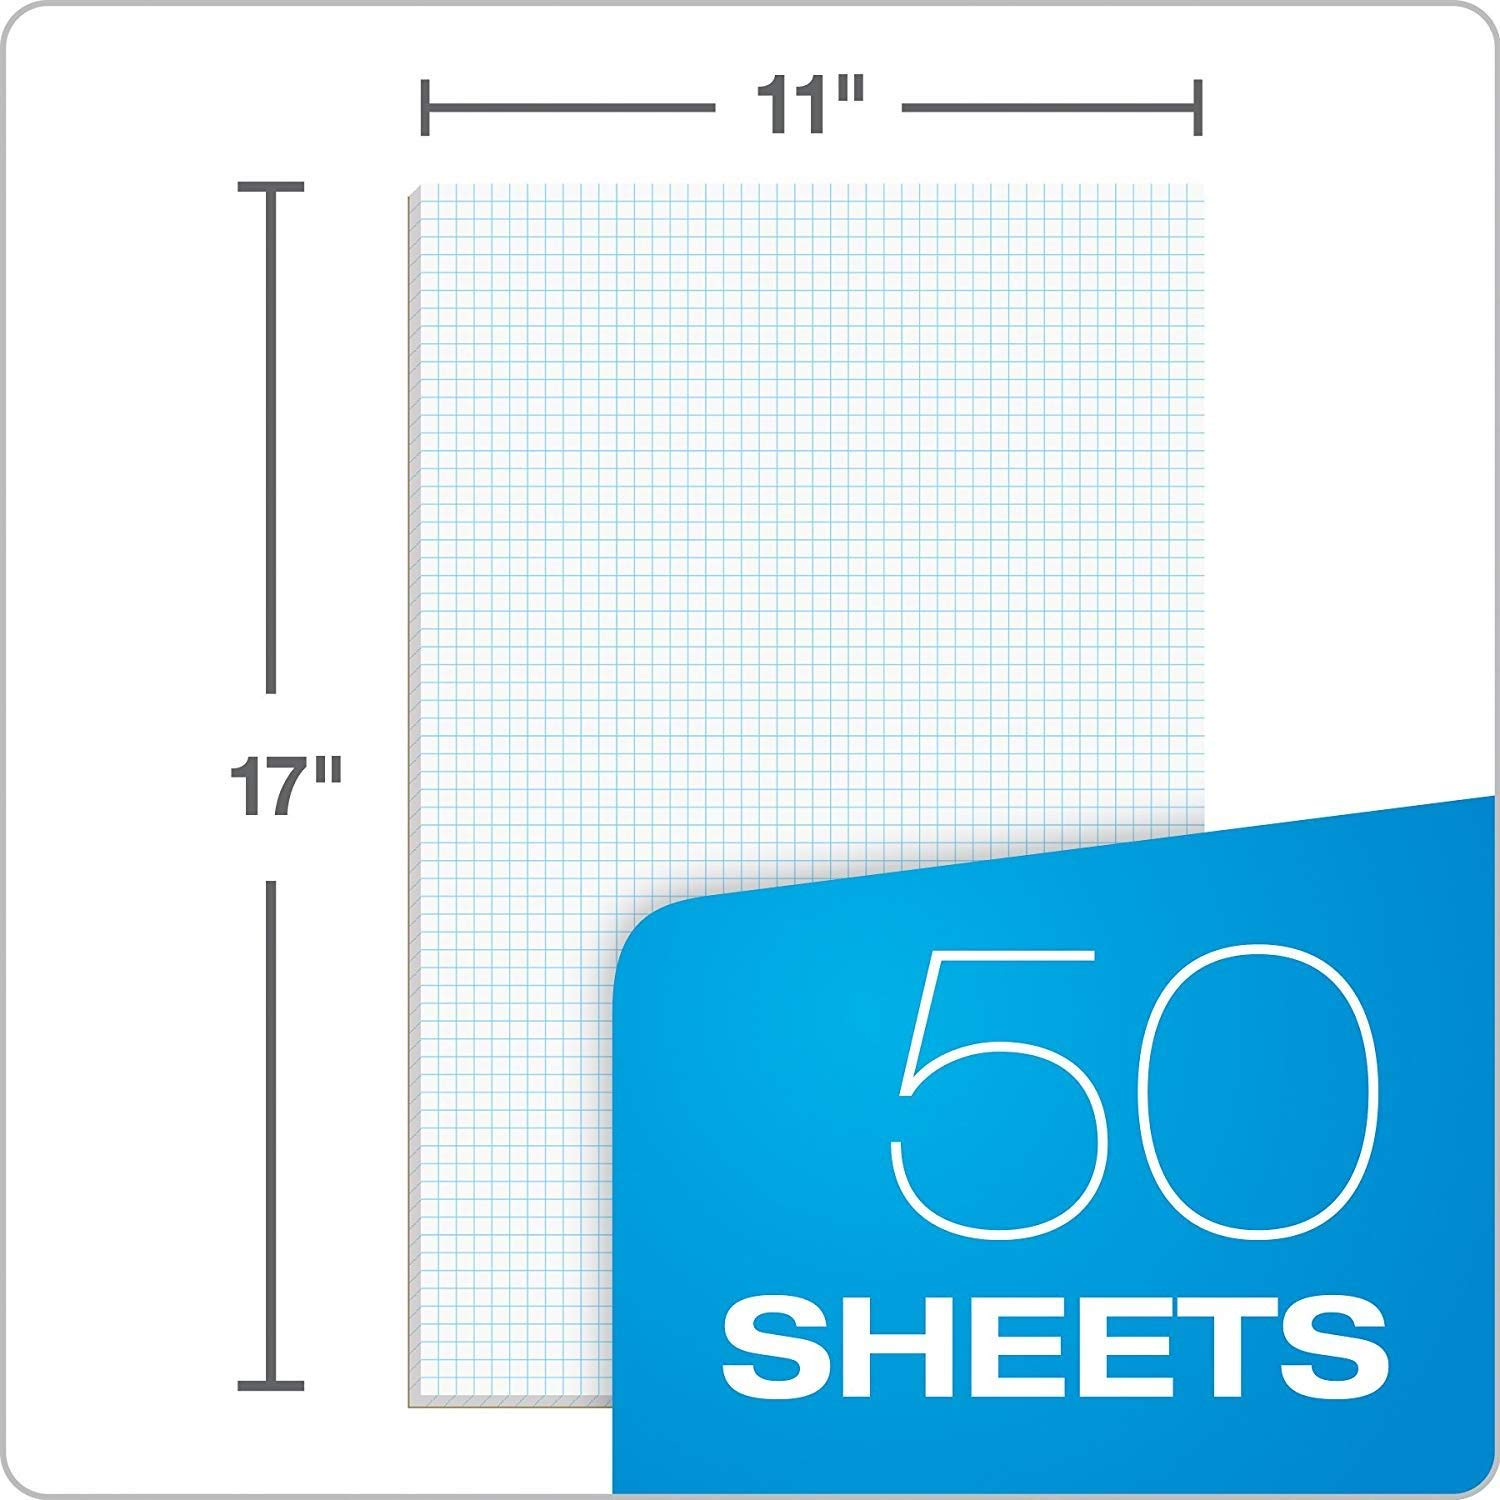 Ampad Quadrille Double Sided Pad, 11 x 17, White, 4x4 Quad Rule, 50 Sheets, 10 Pads, 500 Sheets Total (22-037) by Ampad (Image #5)